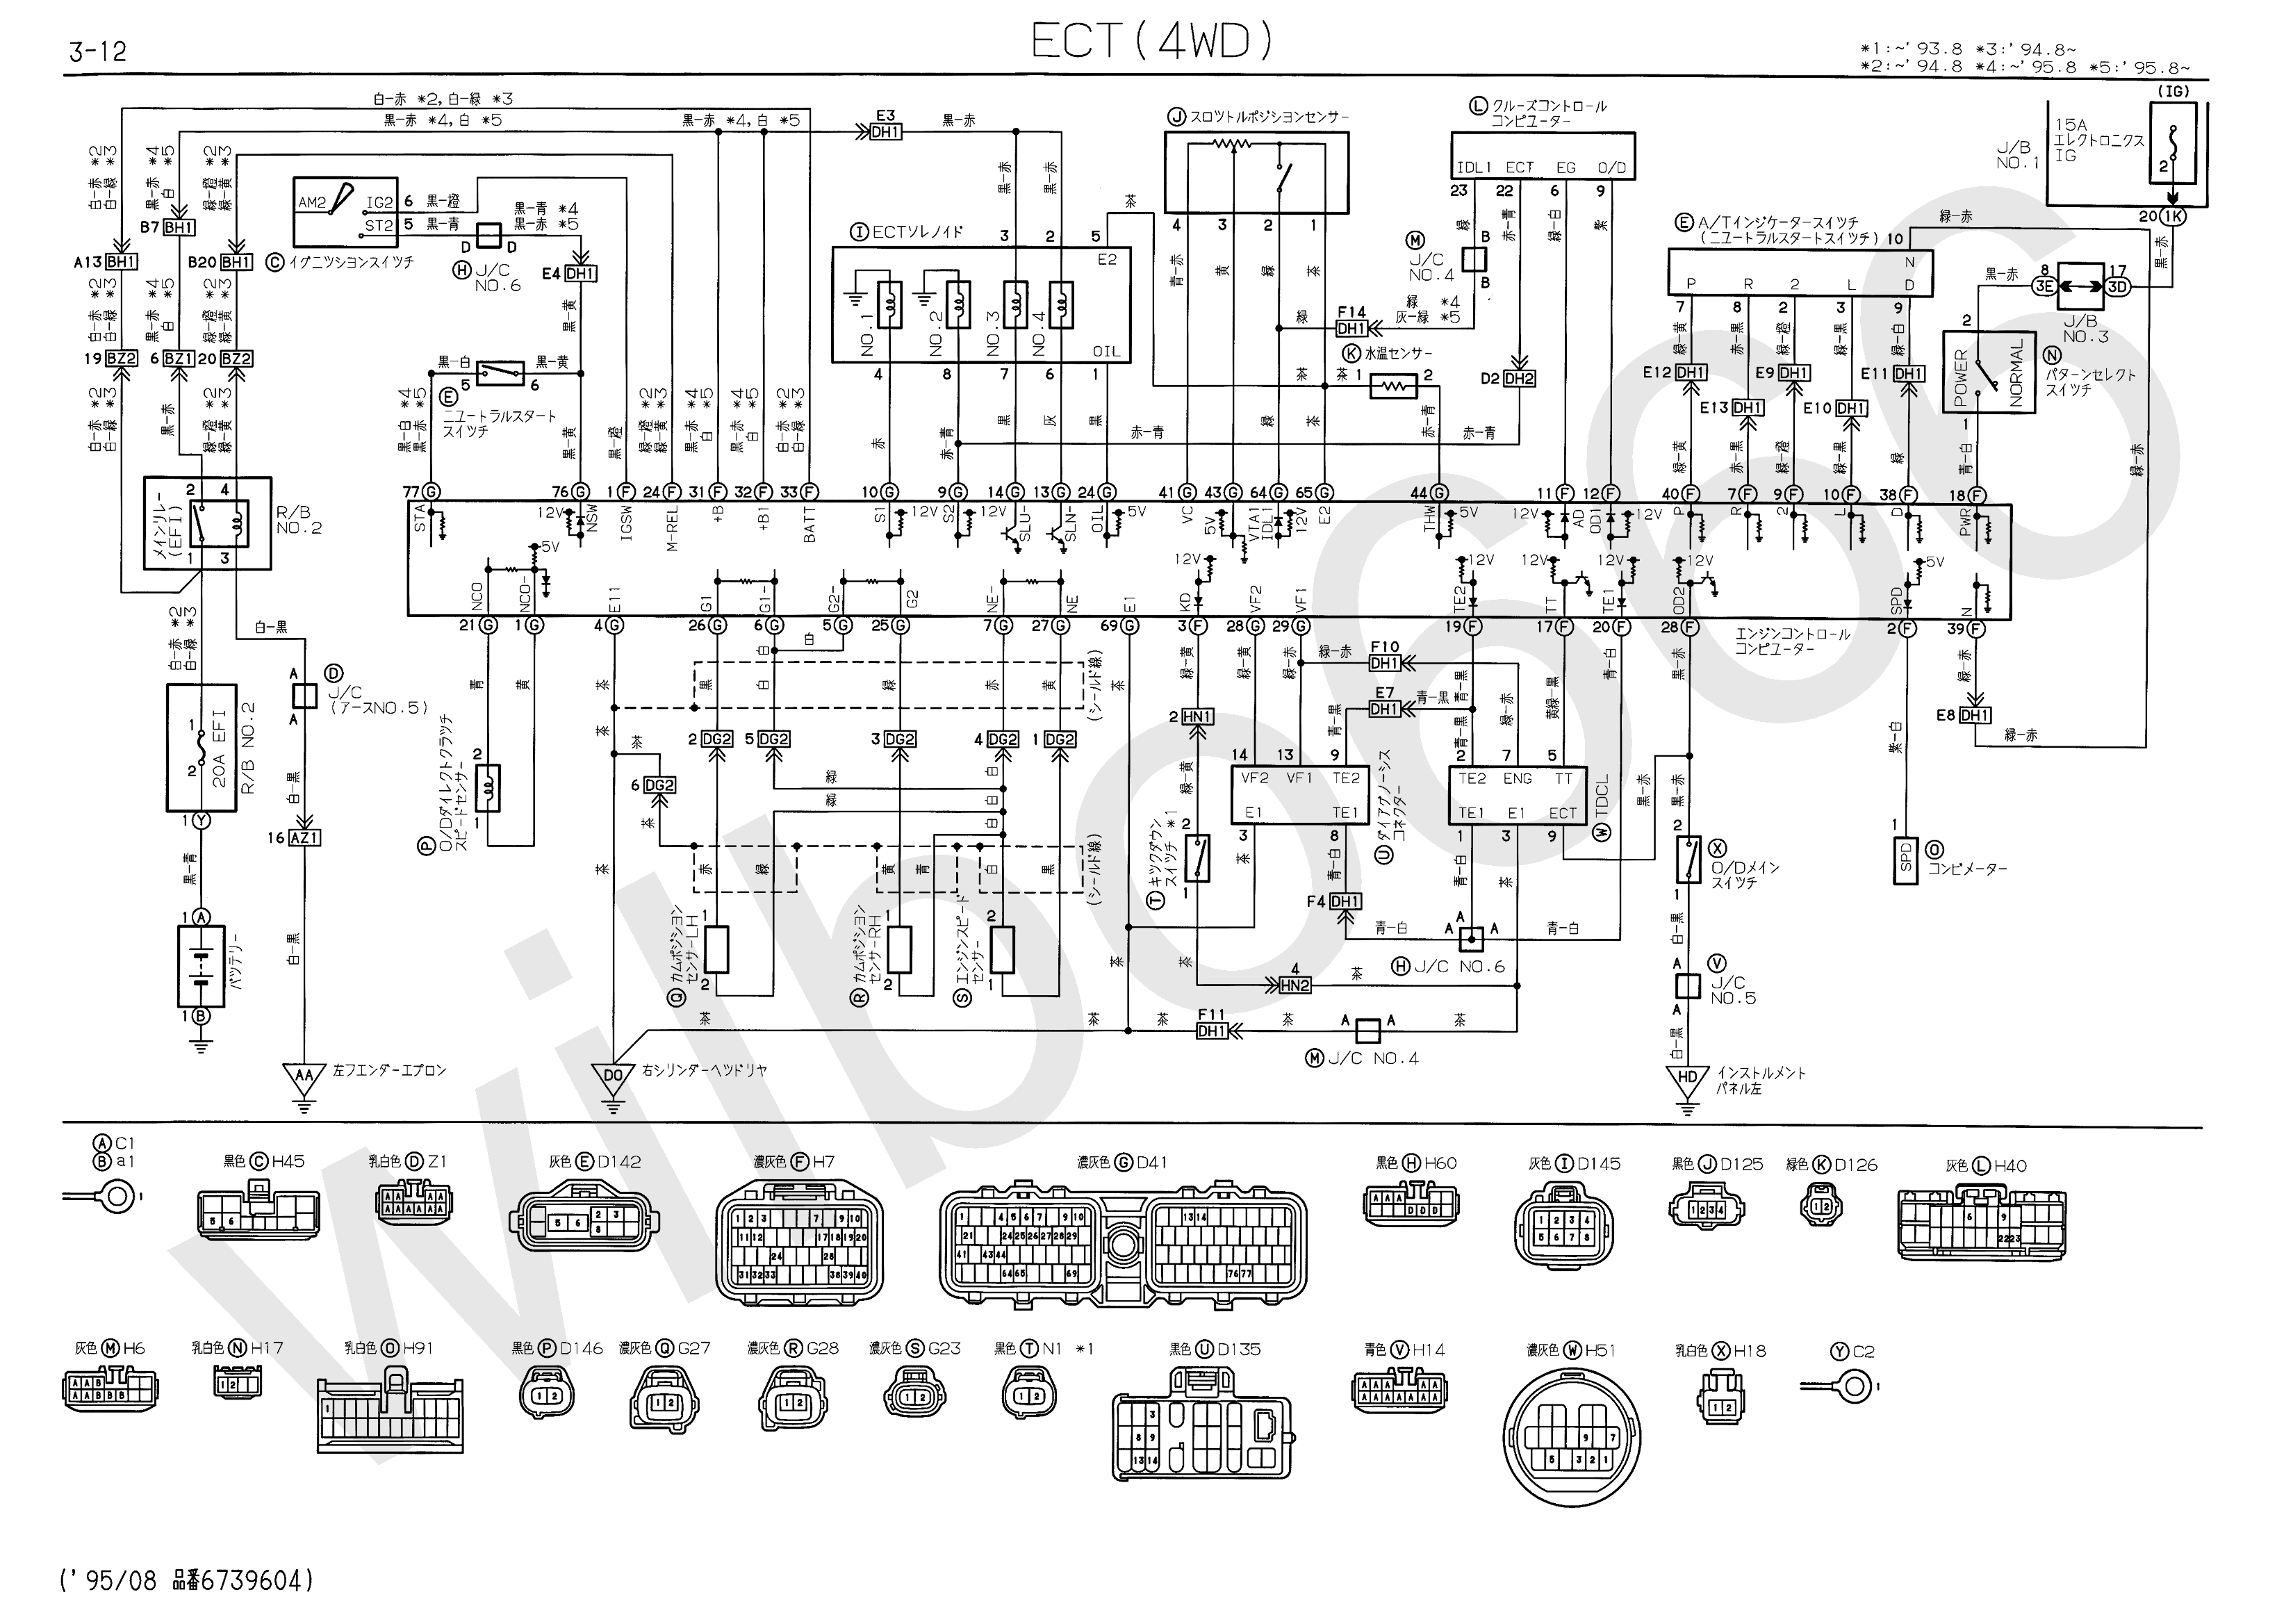 Beautiful Hyster Forklift Wiring Diagram Photos Images for image – Linde Forklift Wiring Diagrams